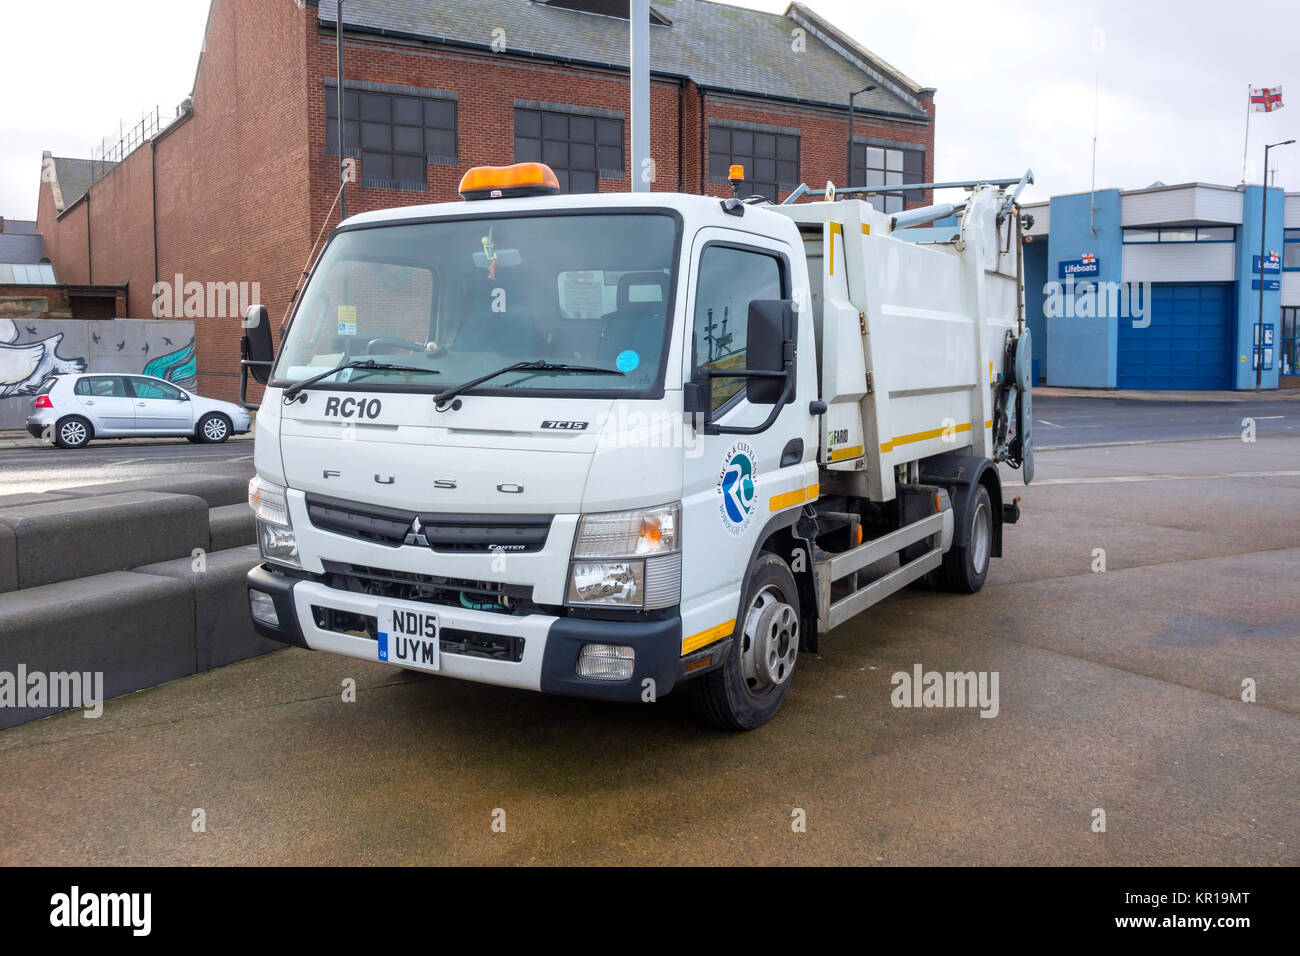 Fuso 7C15 truck fitted with a waste collection and tipping body used by Local Authorities for collecting rubbish - Stock Image